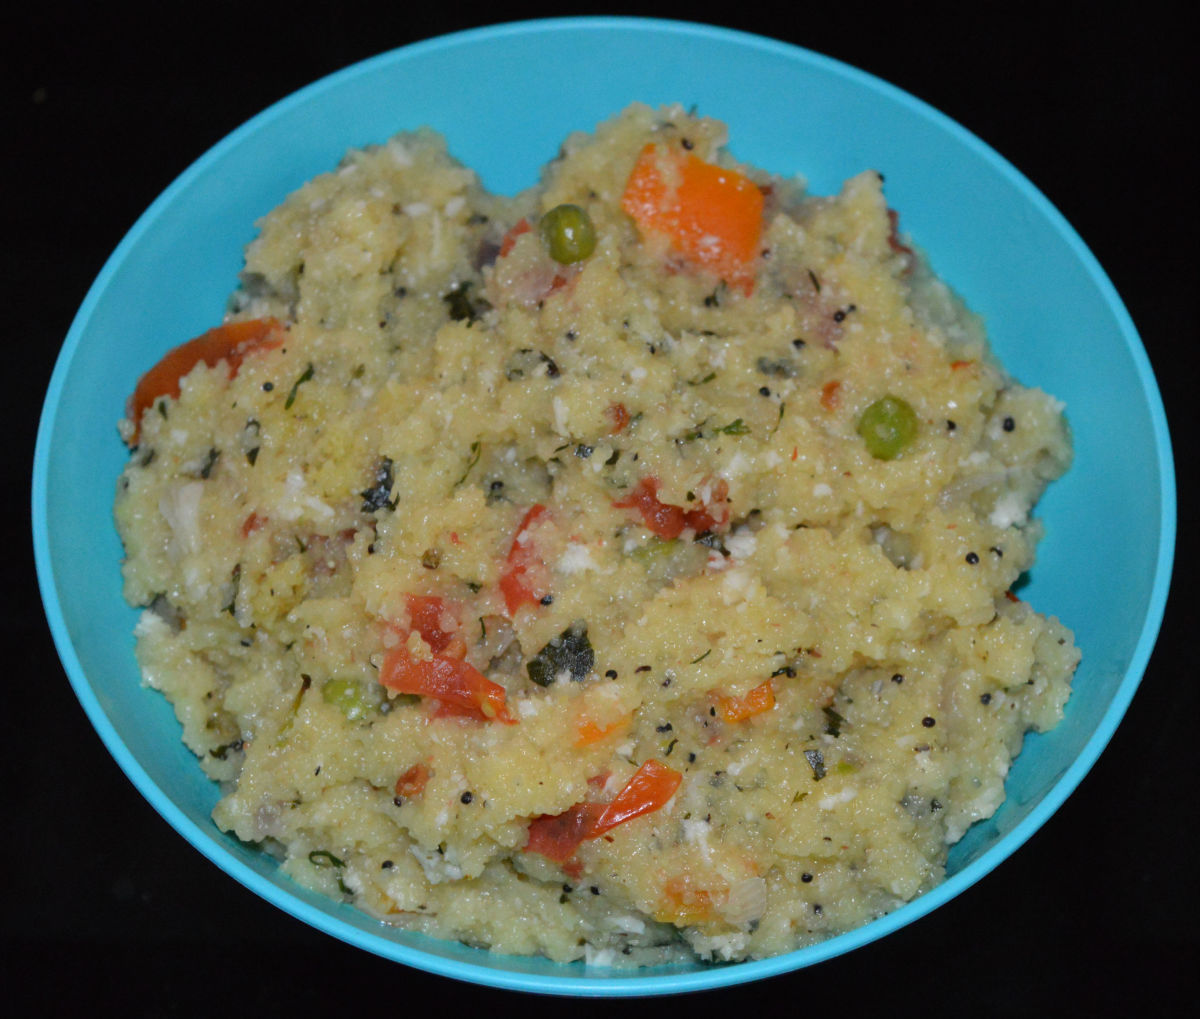 Upma made with instant mix. I added cooked vegetables, too.